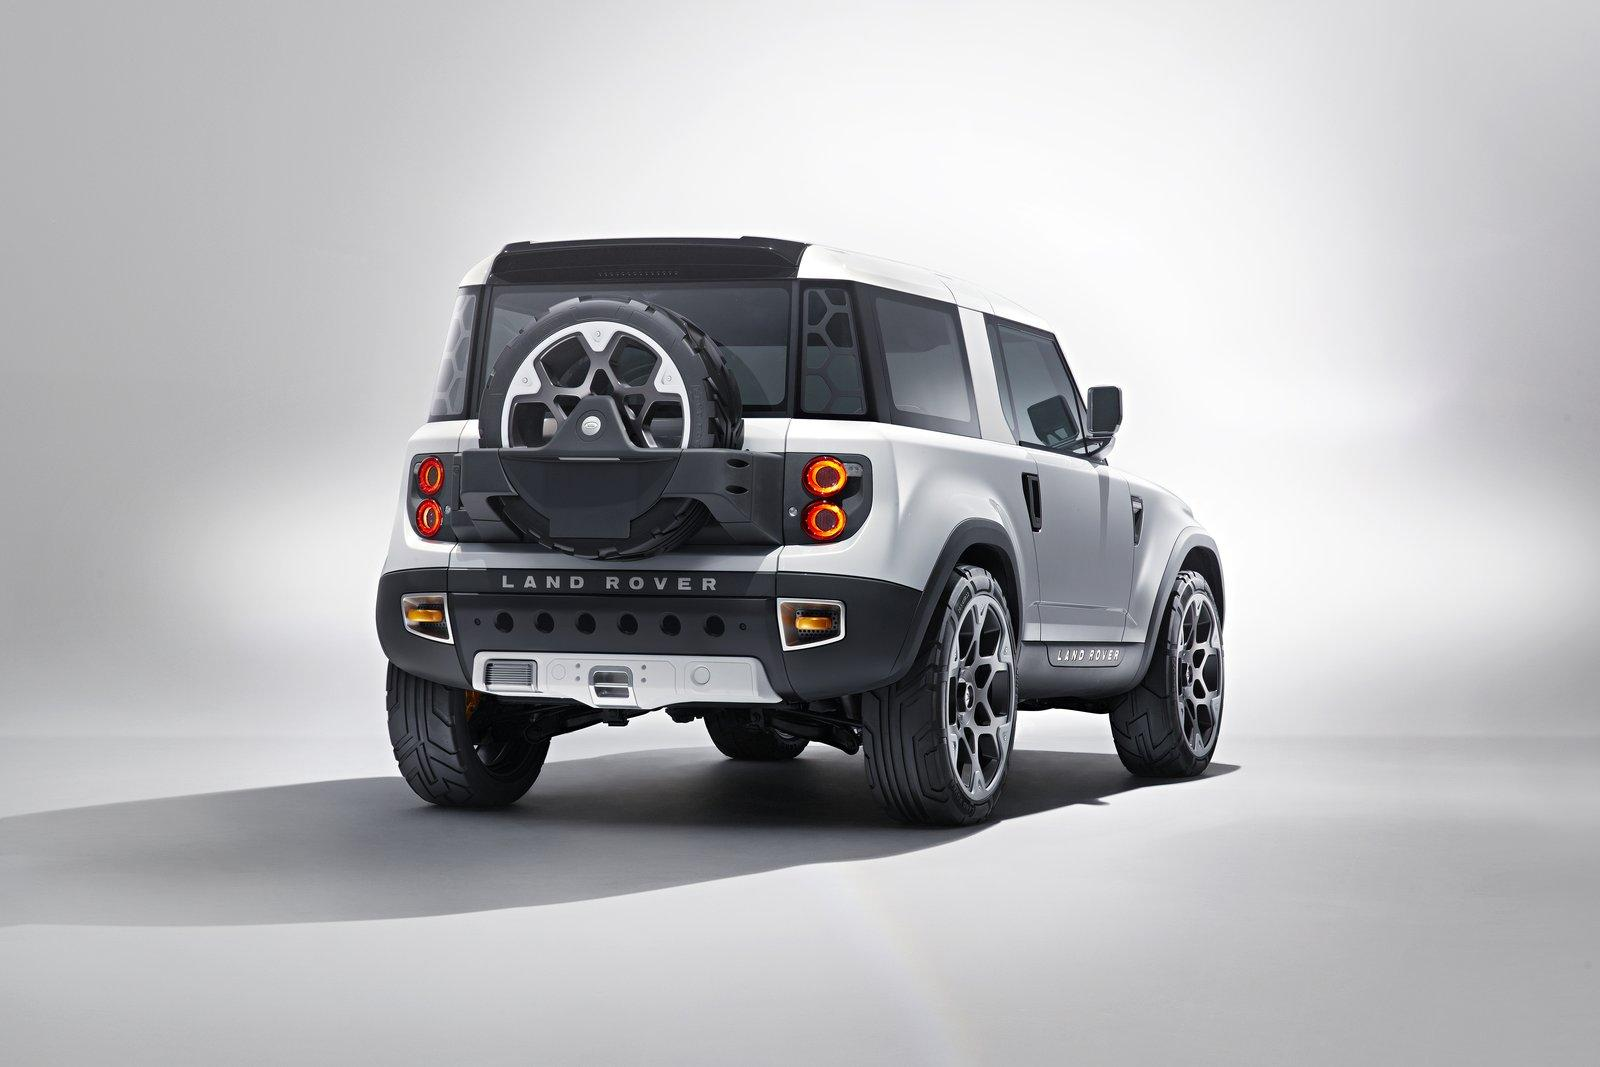 Land Rover Cars News Landy Name Trademarked Urban Suv